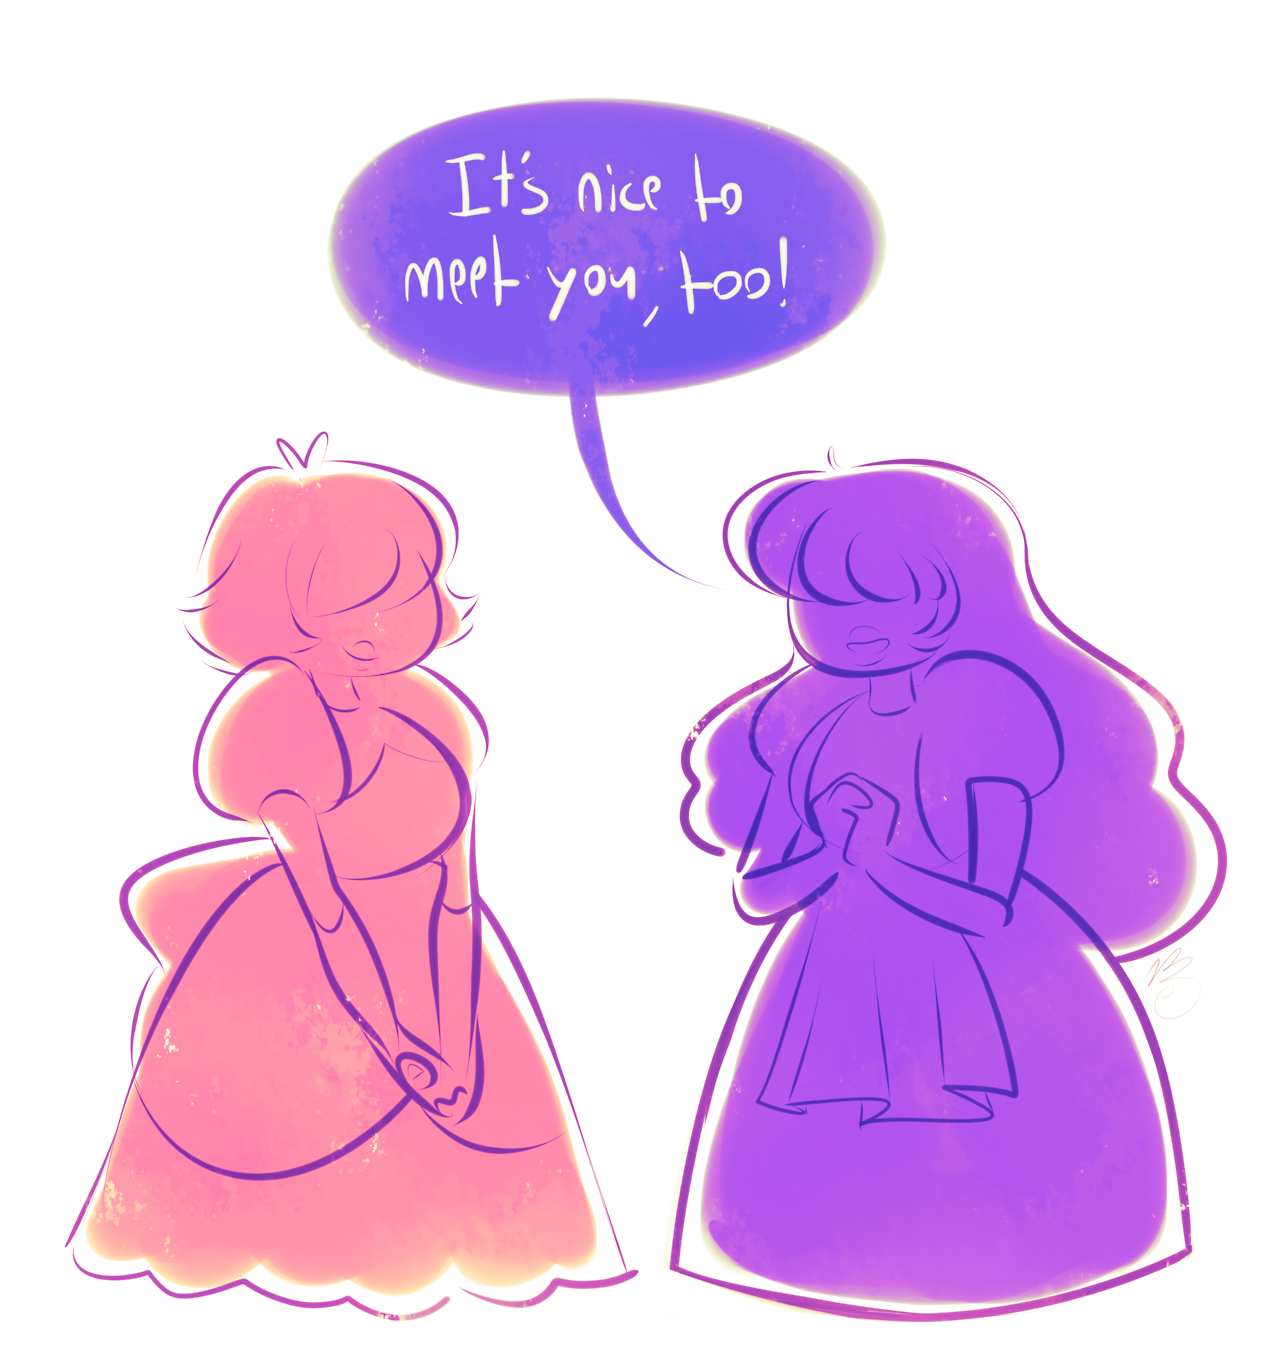 sapphire would probably b so patient w/ padparadscha cuz she can forsee that pad will catch up eventually, but their conversations would end up structured so weirdly lmao